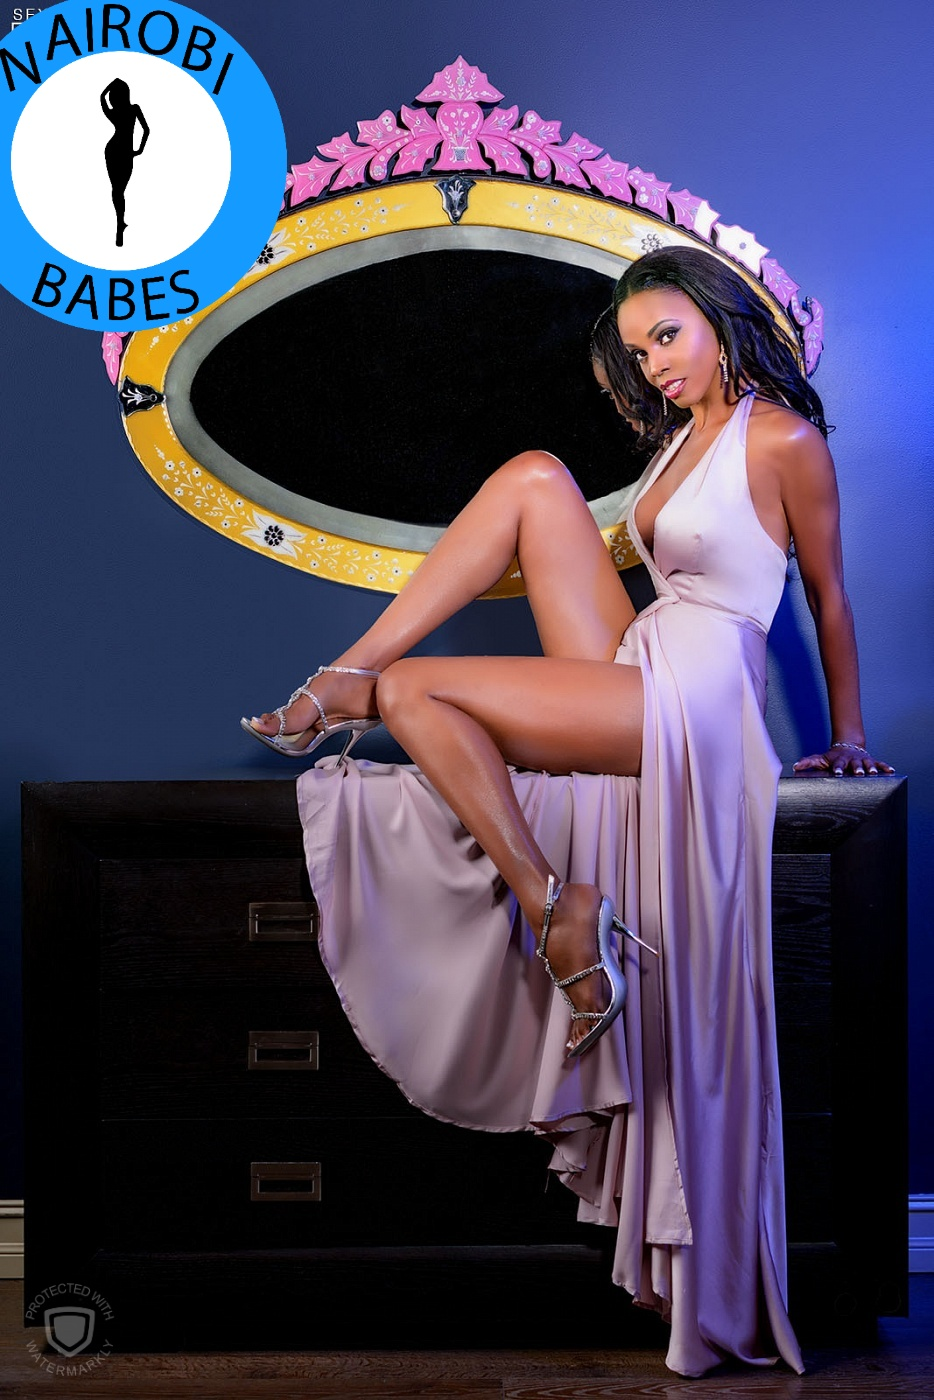 Spend some time with Nairobibabes Escort Gaynor in CBD; you won't regret it